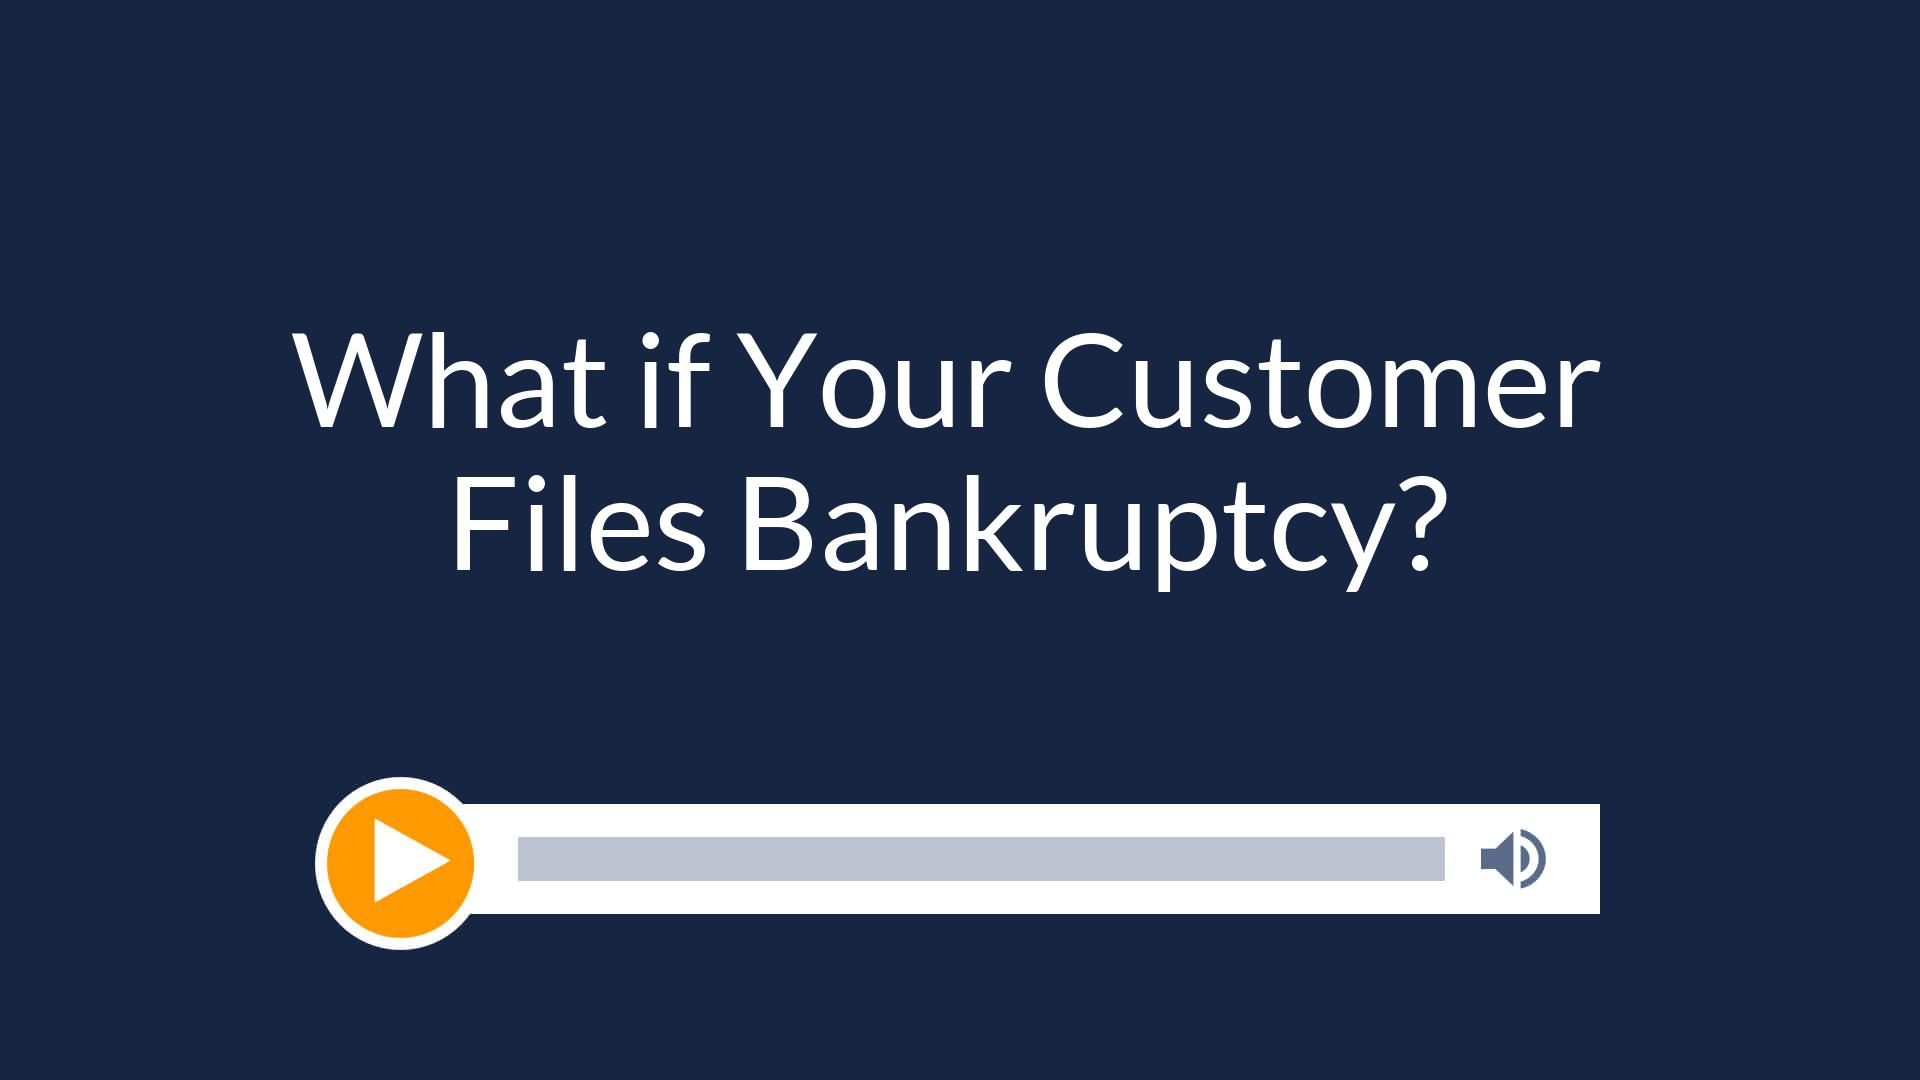 What if Your Customer Files Bankruptcy?